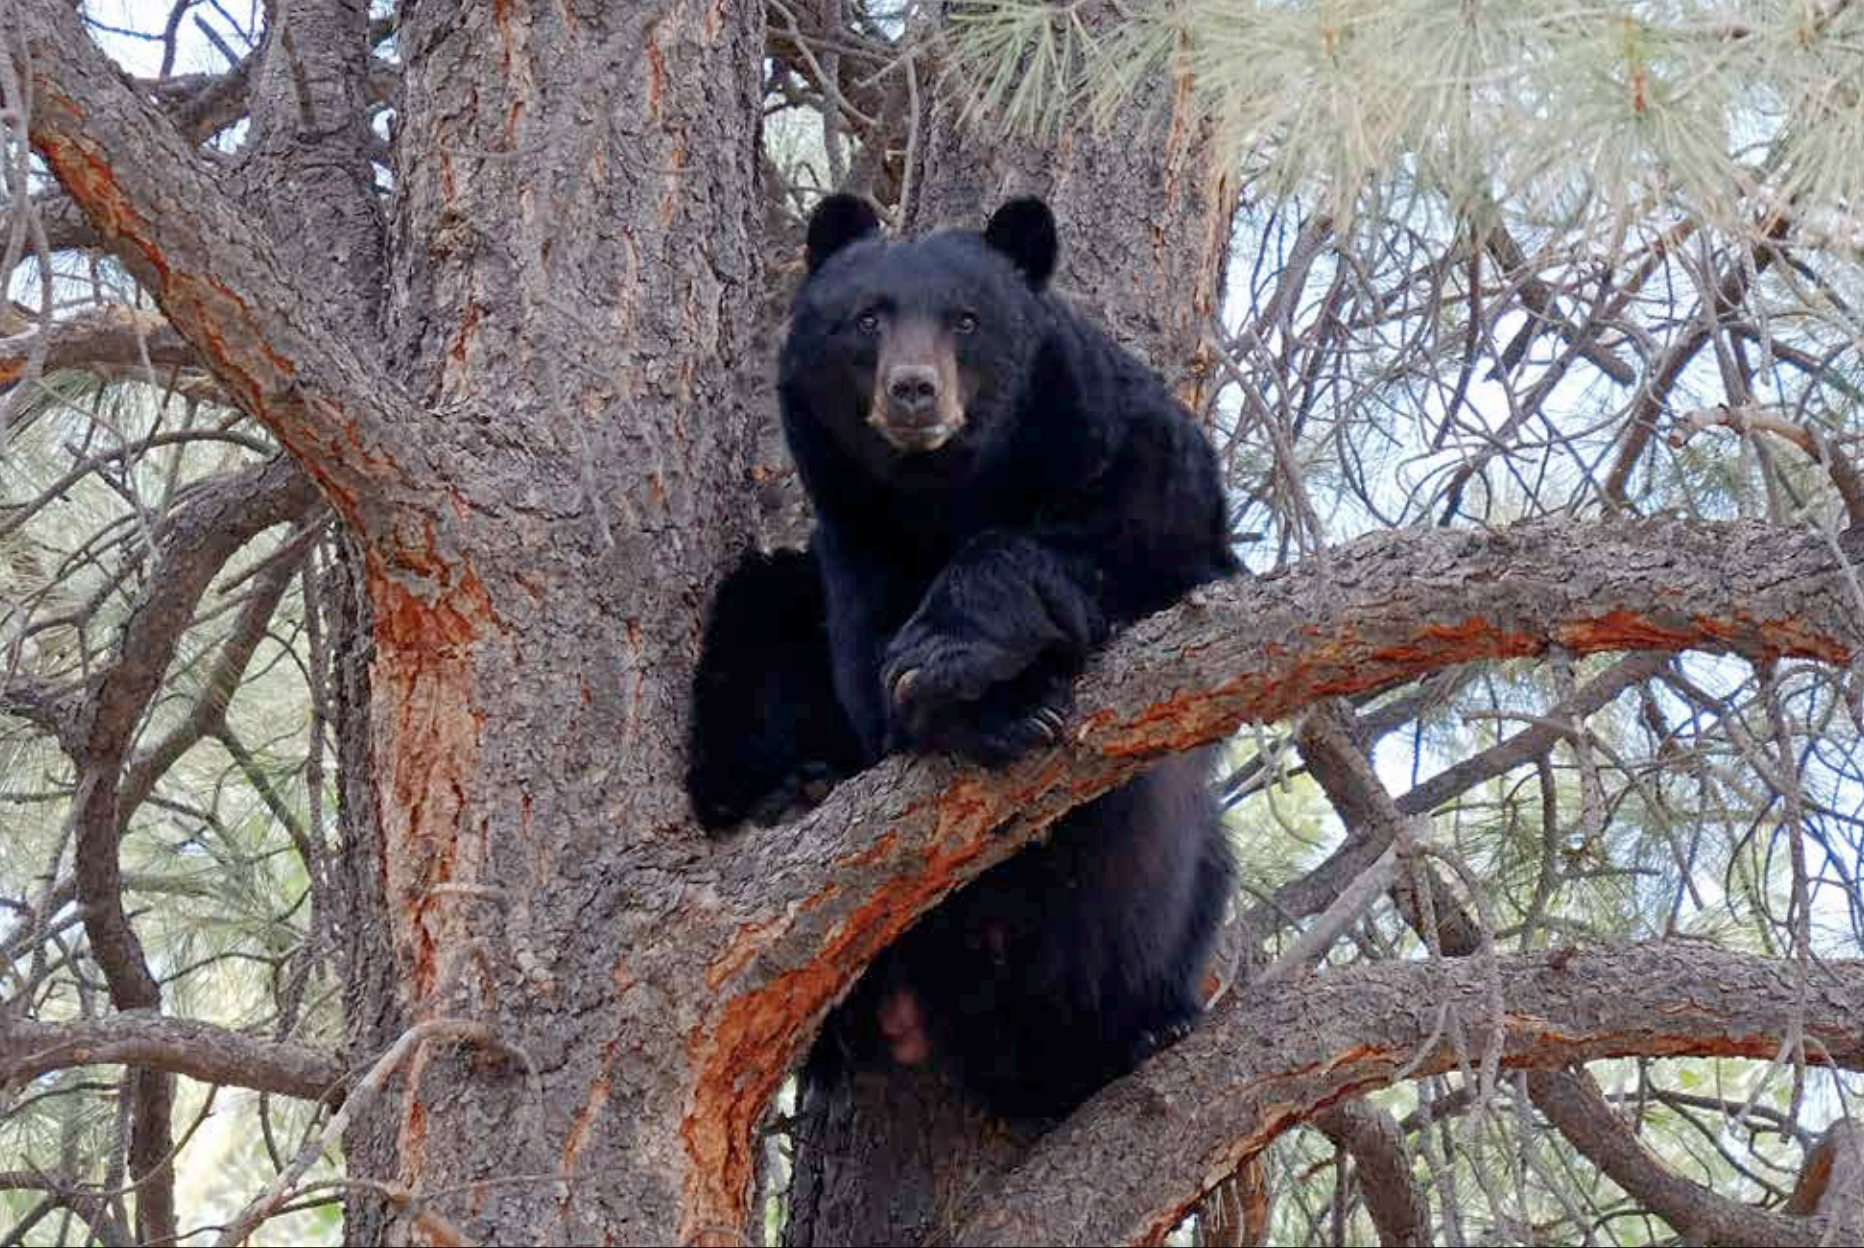 A neighborhood black bear hanging out in a ponderosa pine in the Baca.